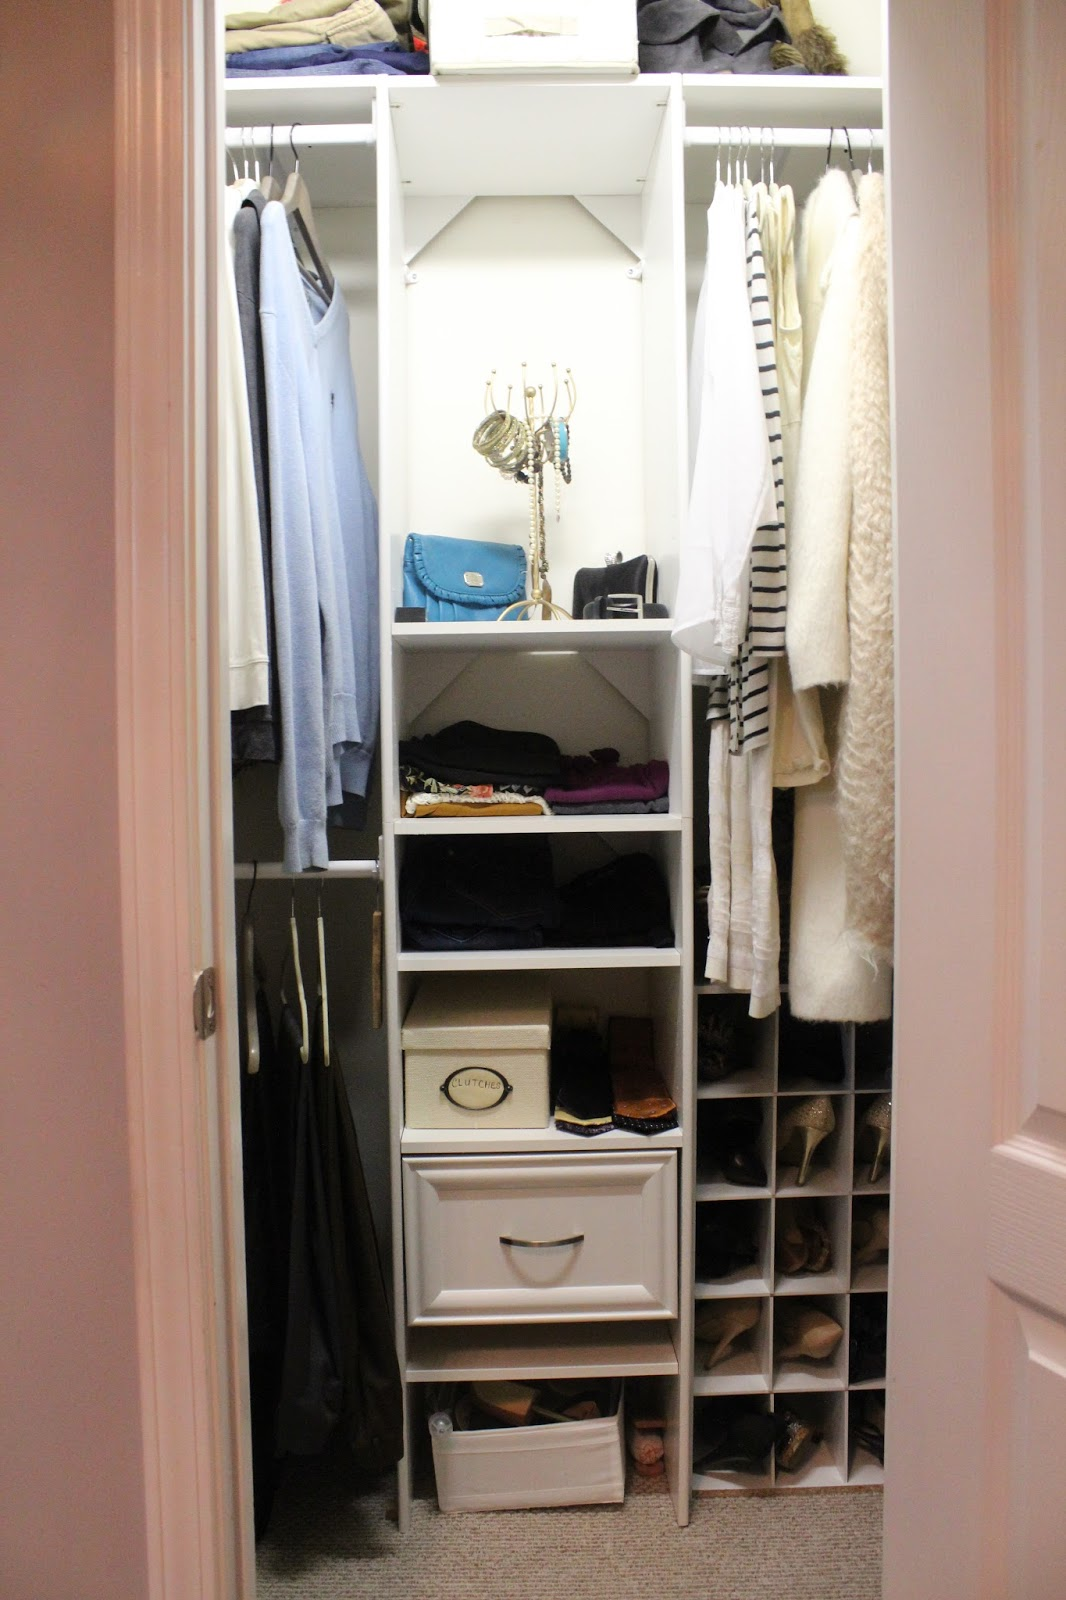 When We Bought Our Home, The Master Closet Had Wired Racks Installed. We  Got Rid Of The Wire Racks And Opted For Closet Maid Custom Closet System.